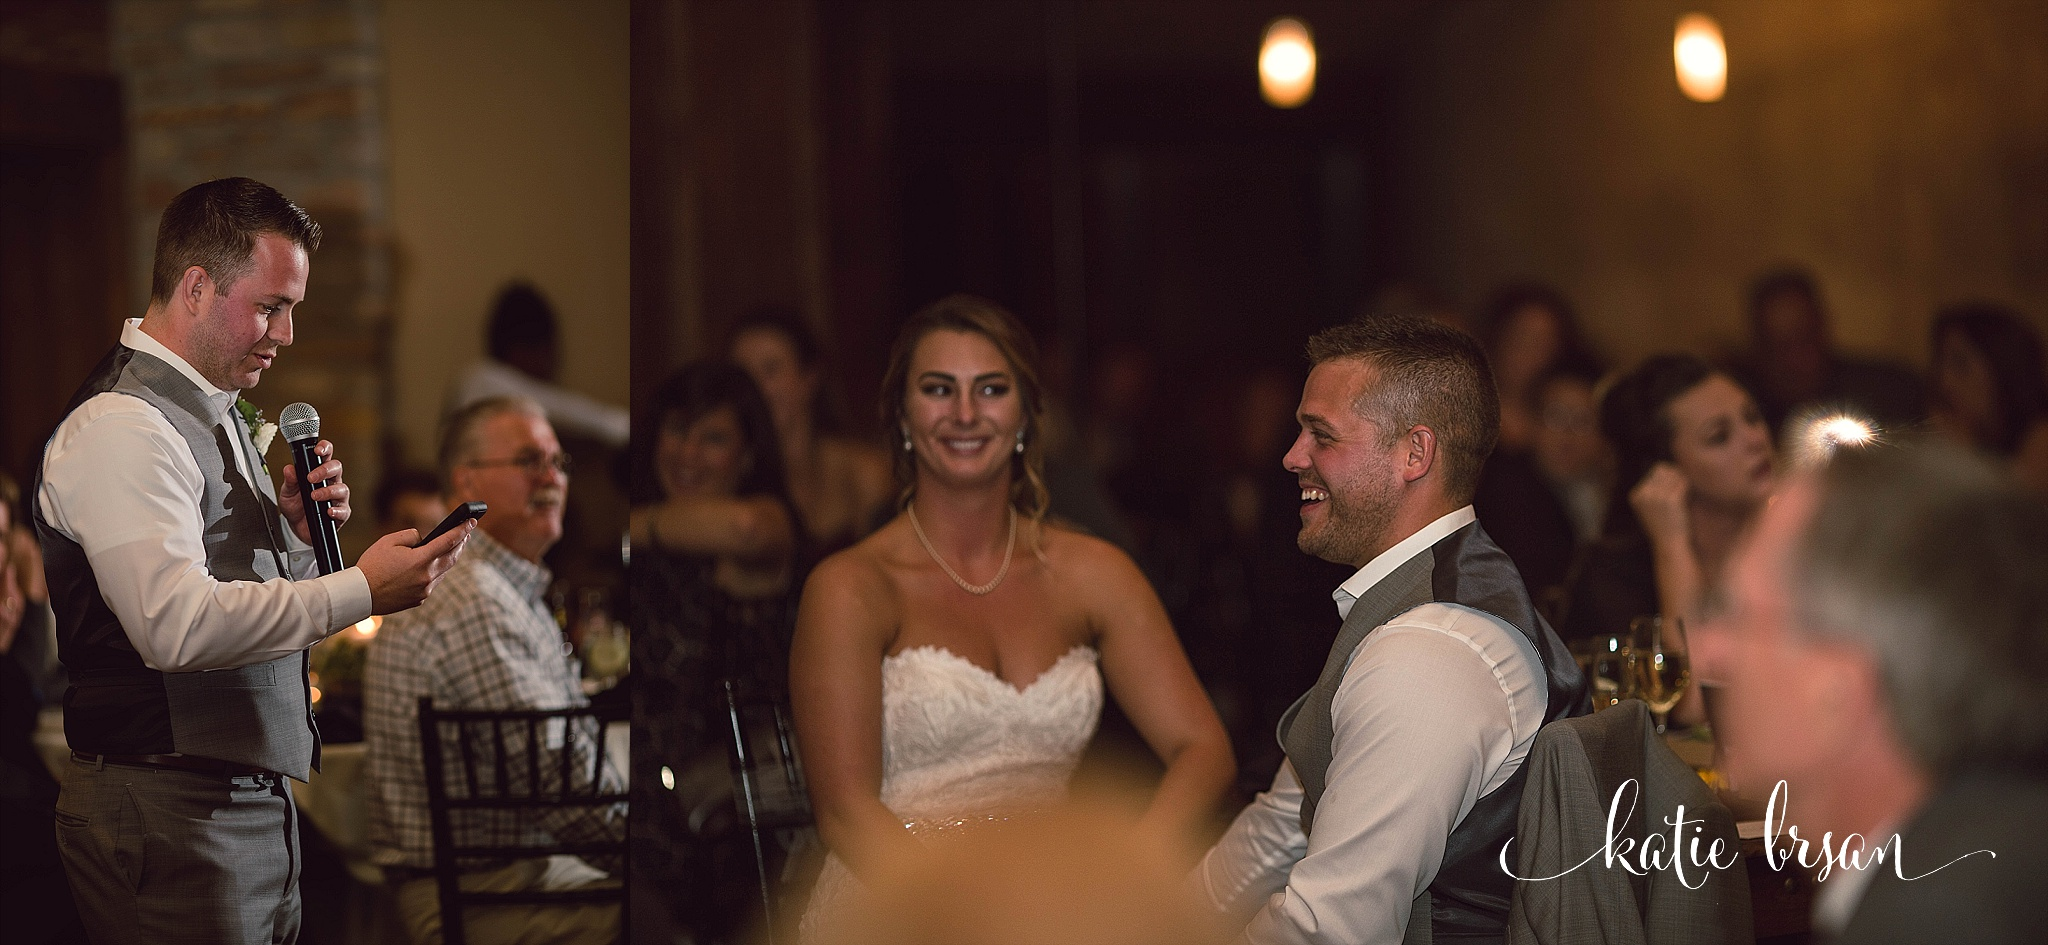 Fishermen'sInn_Wedding_Elburn_Chicago_Wedding_Photographer_1151.jpg